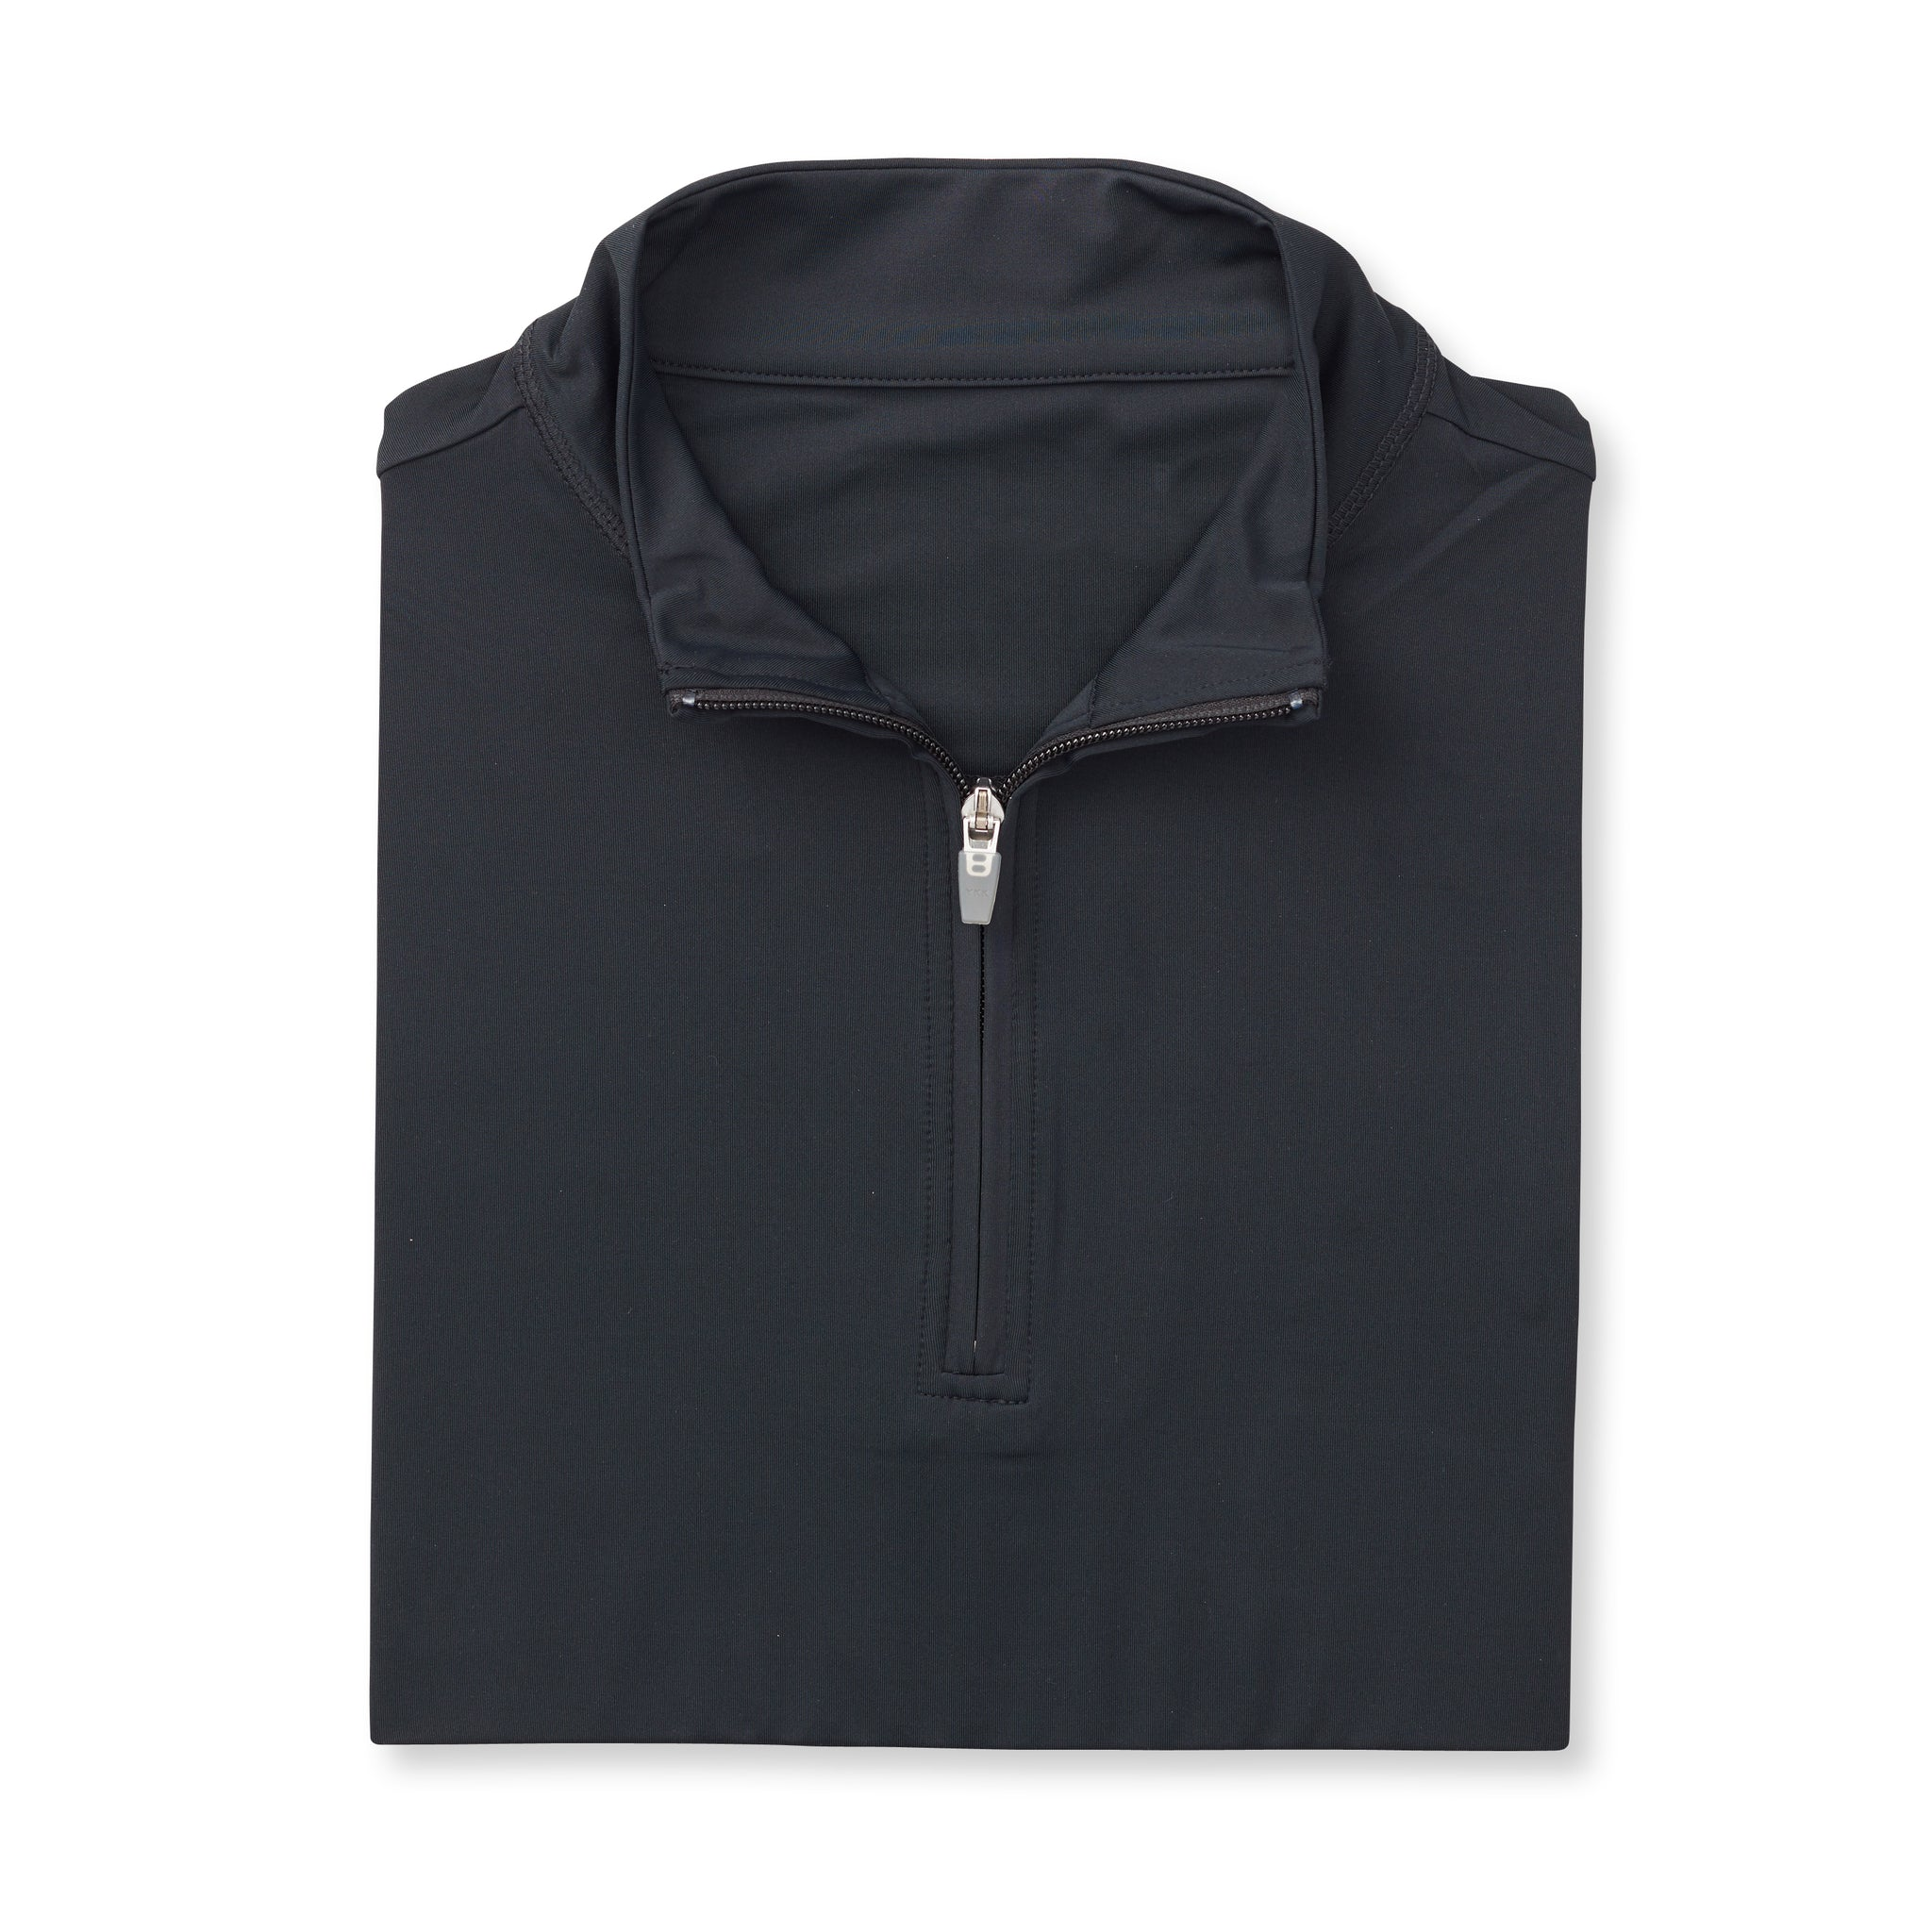 ECOTEC Half Zip Pullover - Black IS66006